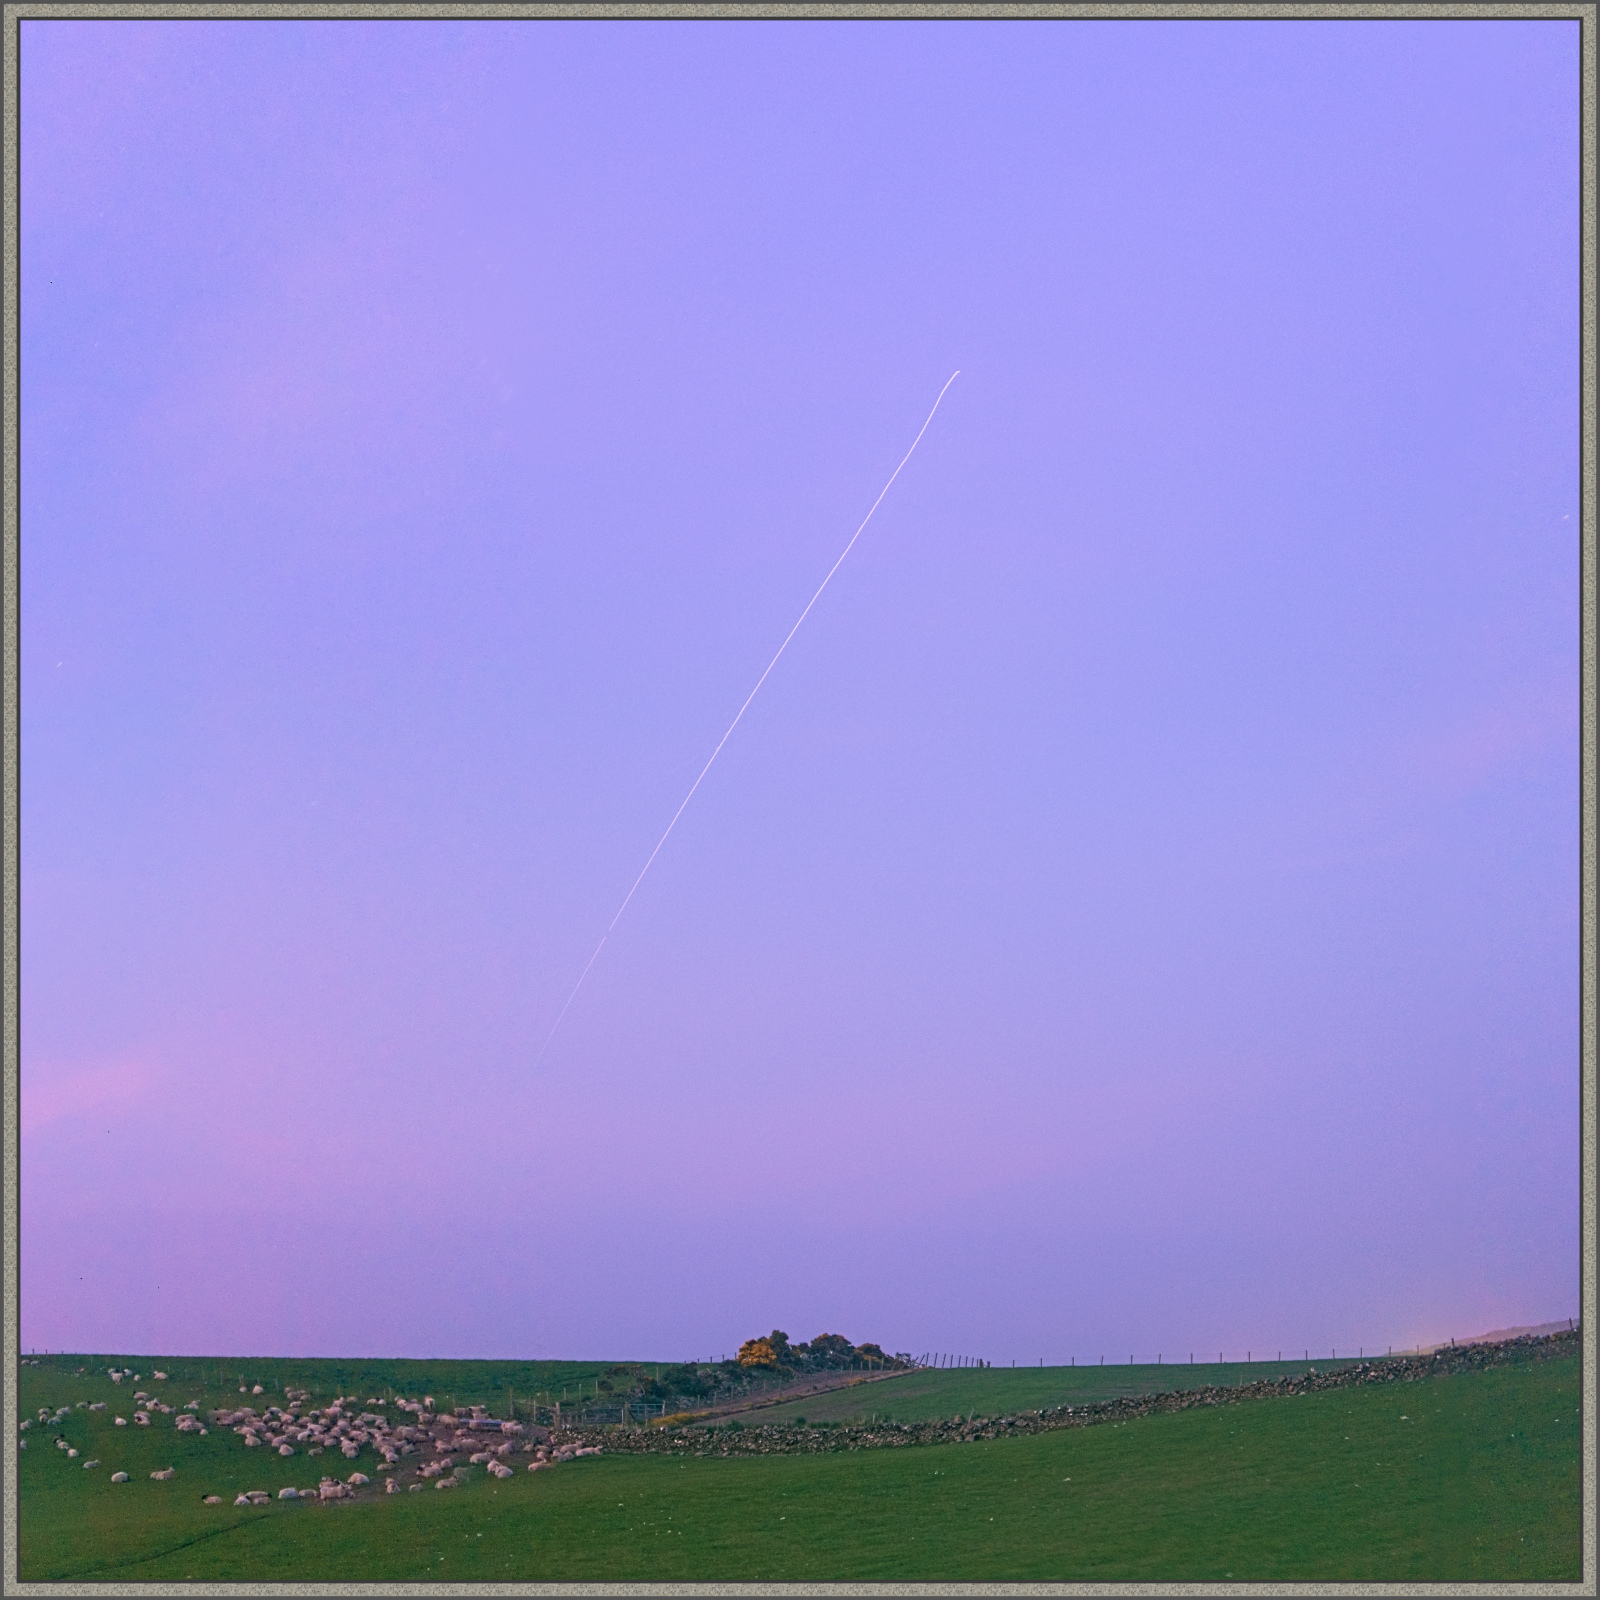 The International Space Station approaching departing to the ESE